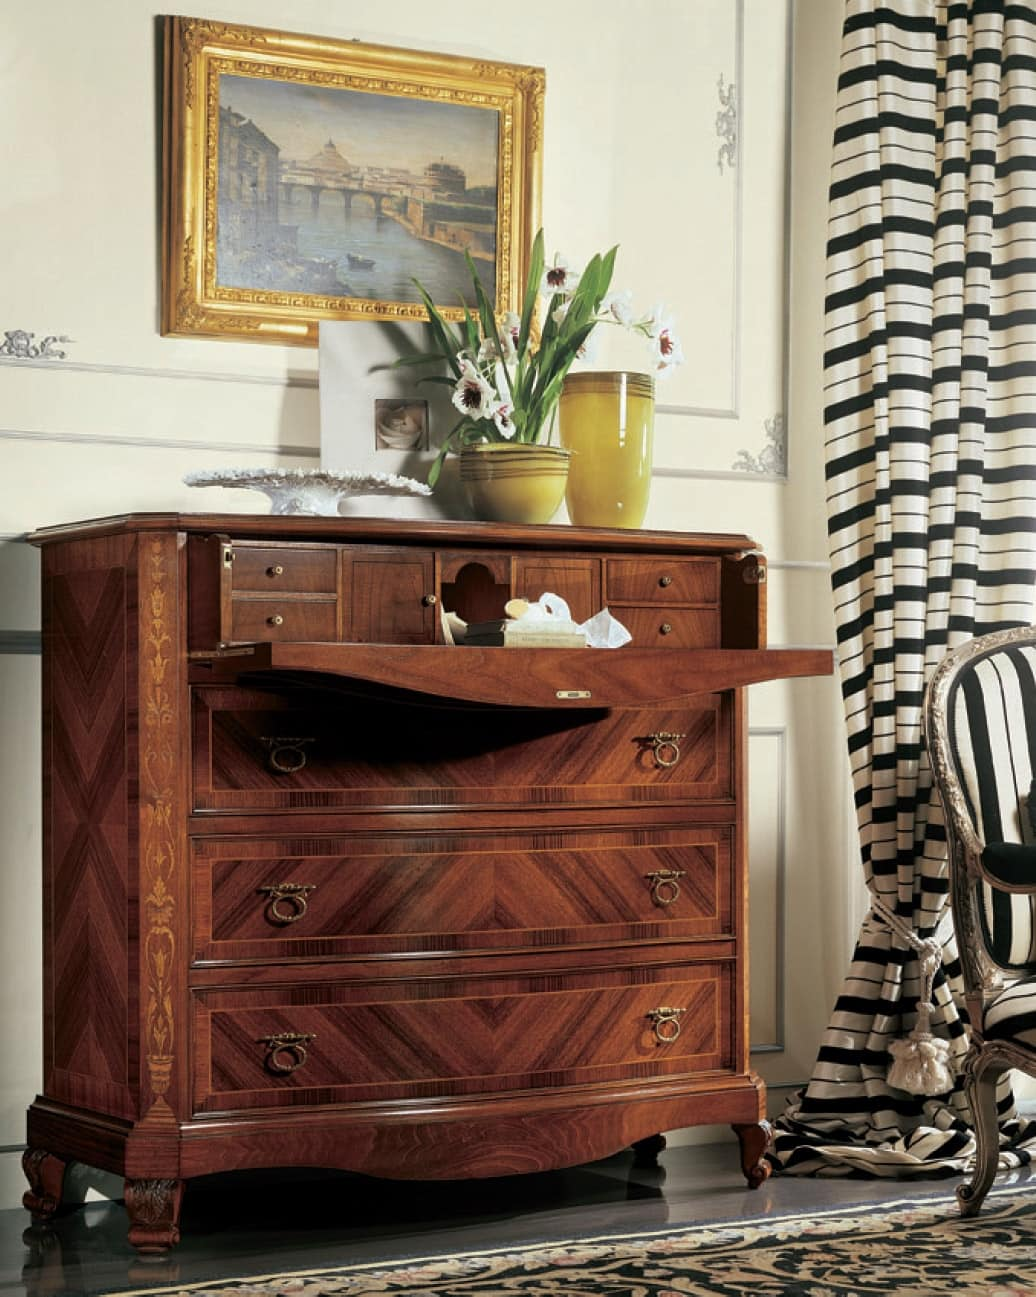 Settecento flap, Chest of drawer with flap door, in carved and inlaid walnut